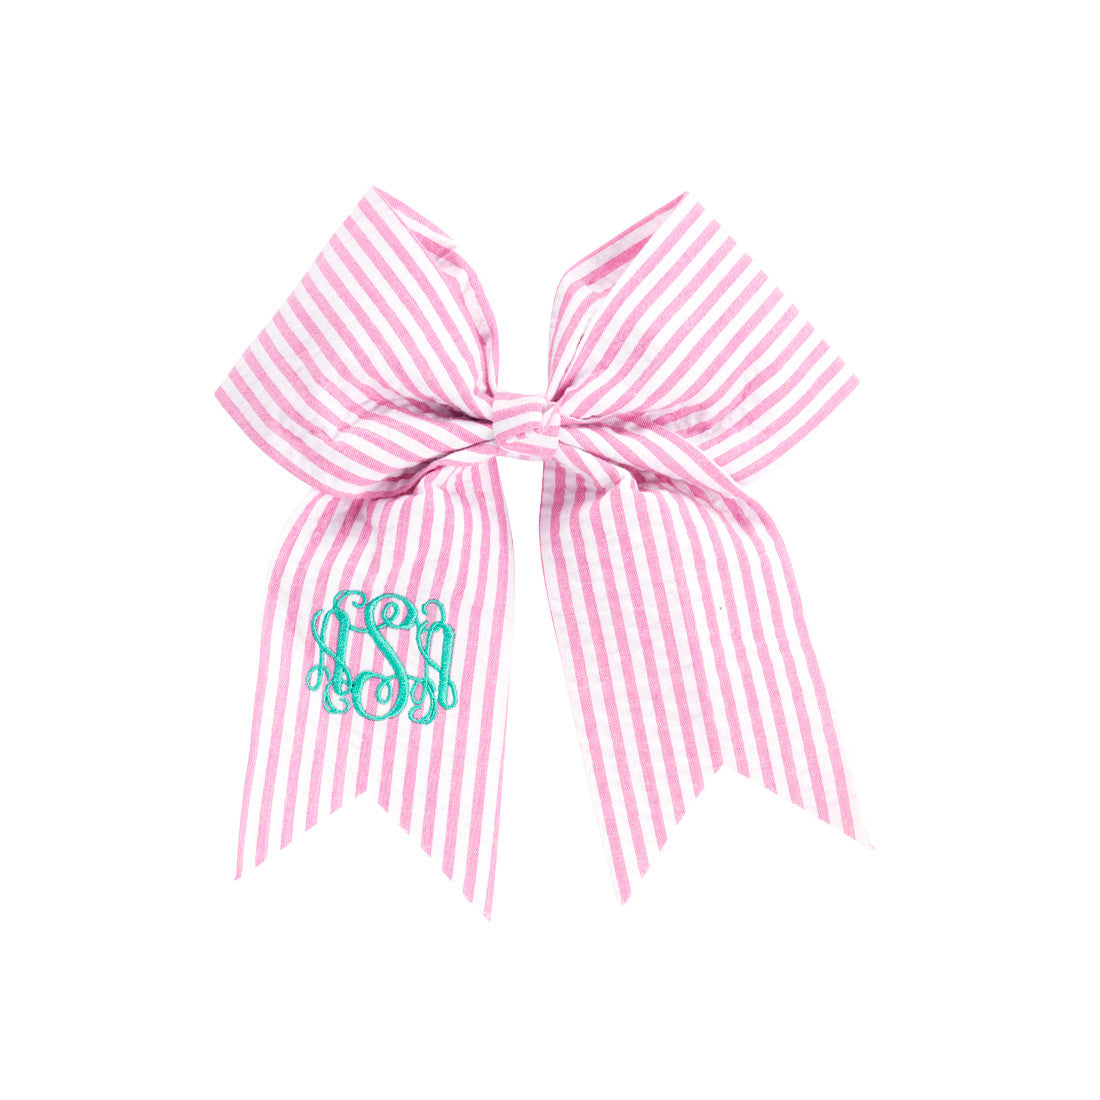 Monogram Bow - Pink Seersucker - Ciao Bella Boutique